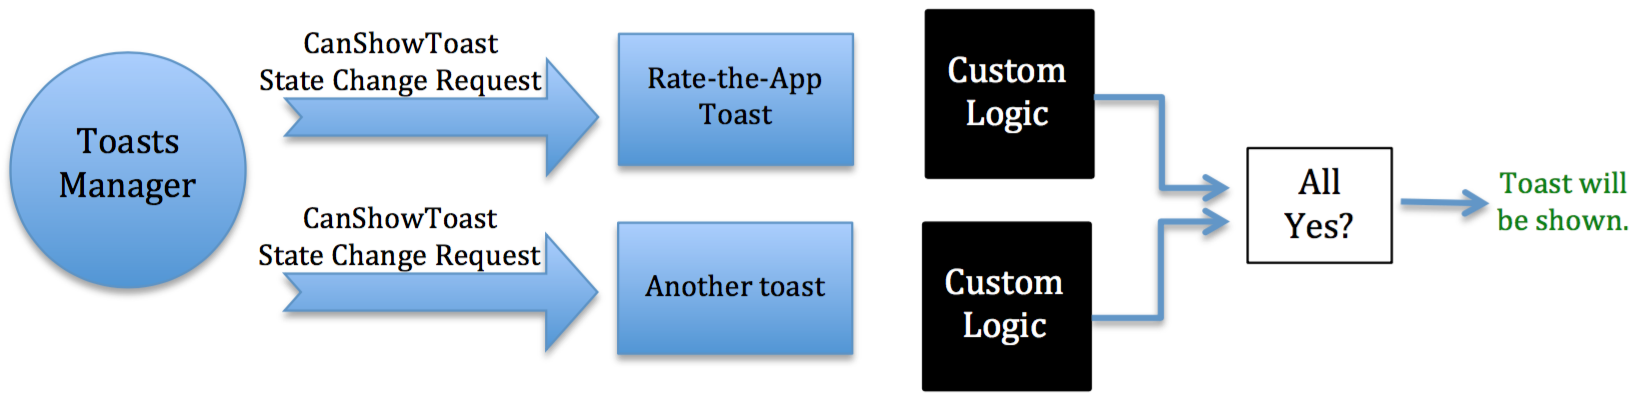 For the Rate-the-App toast, the custom logic simply checks whether the user is currently responding to our toast when a new toast requests to be displayed. This comes by way of a delegate function that is called whenever the feedback flow is exited. As soon as the toast is dismissed or the feedback is received, the Rate-the-App toast relinquishes control of the toast opportunity, should it be necessary